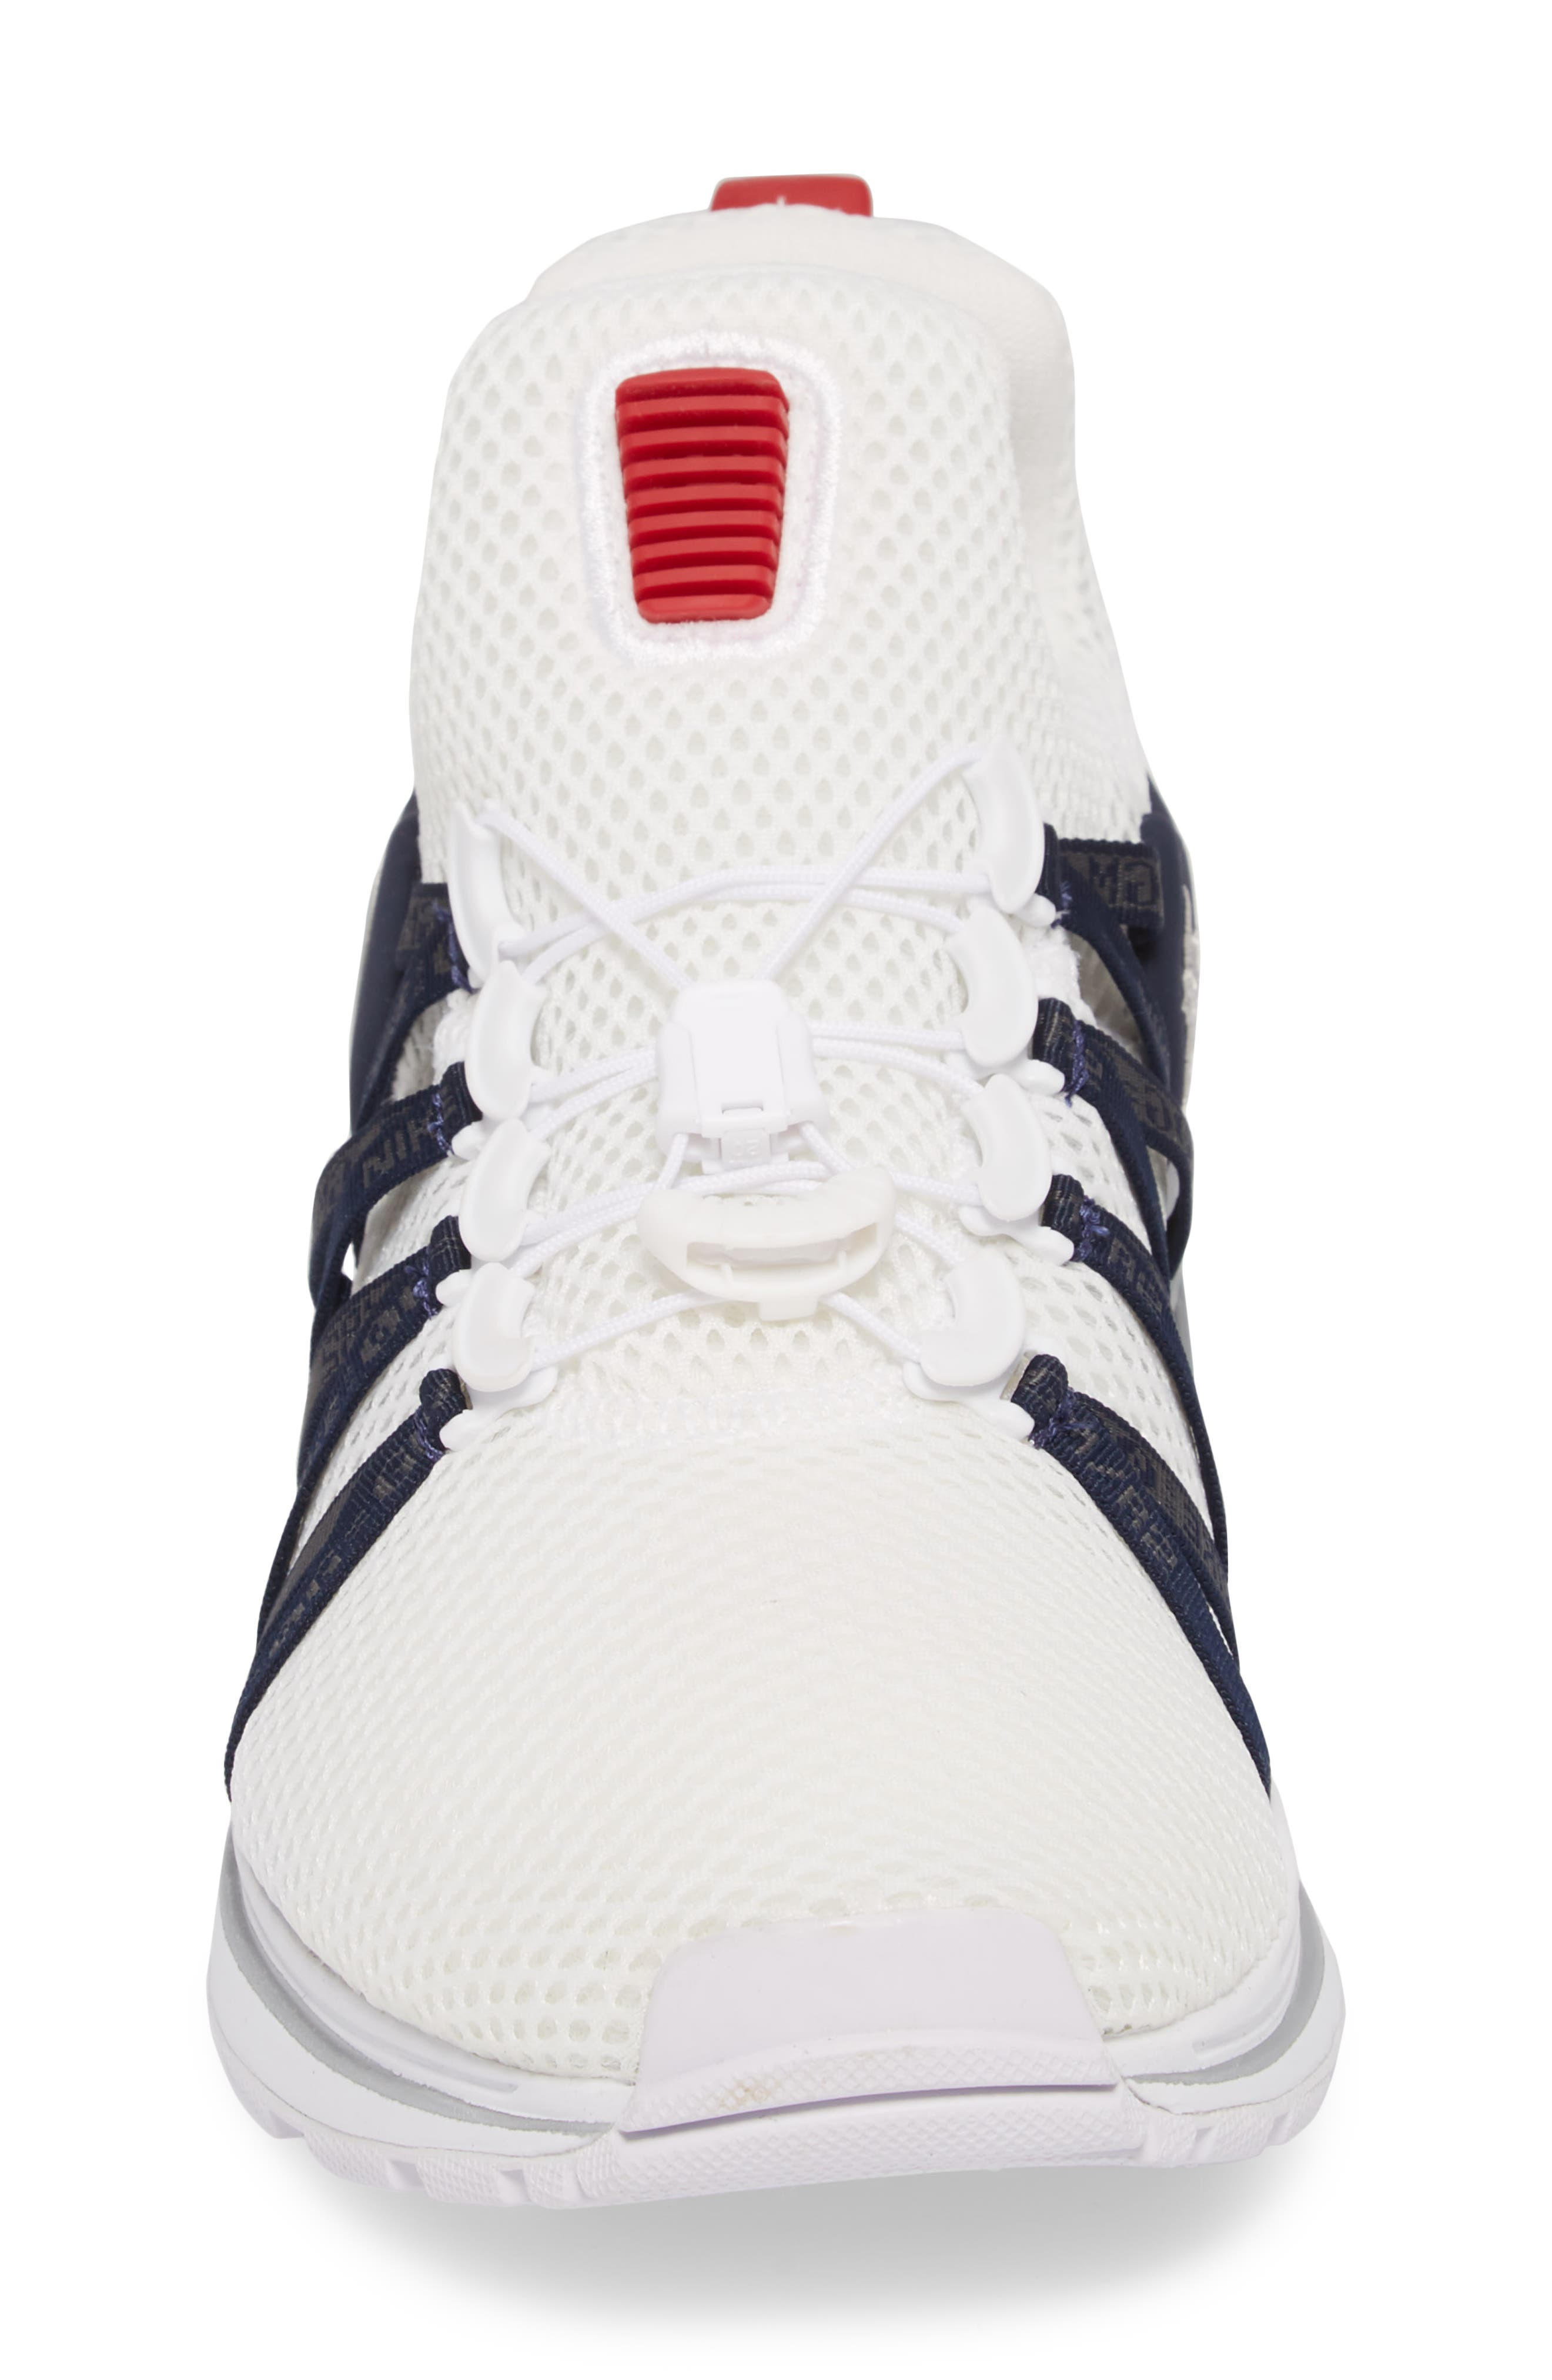 Shox Gravity Sneaker,                             Alternate thumbnail 4, color,                             WHITE/ METALLIC SILVER